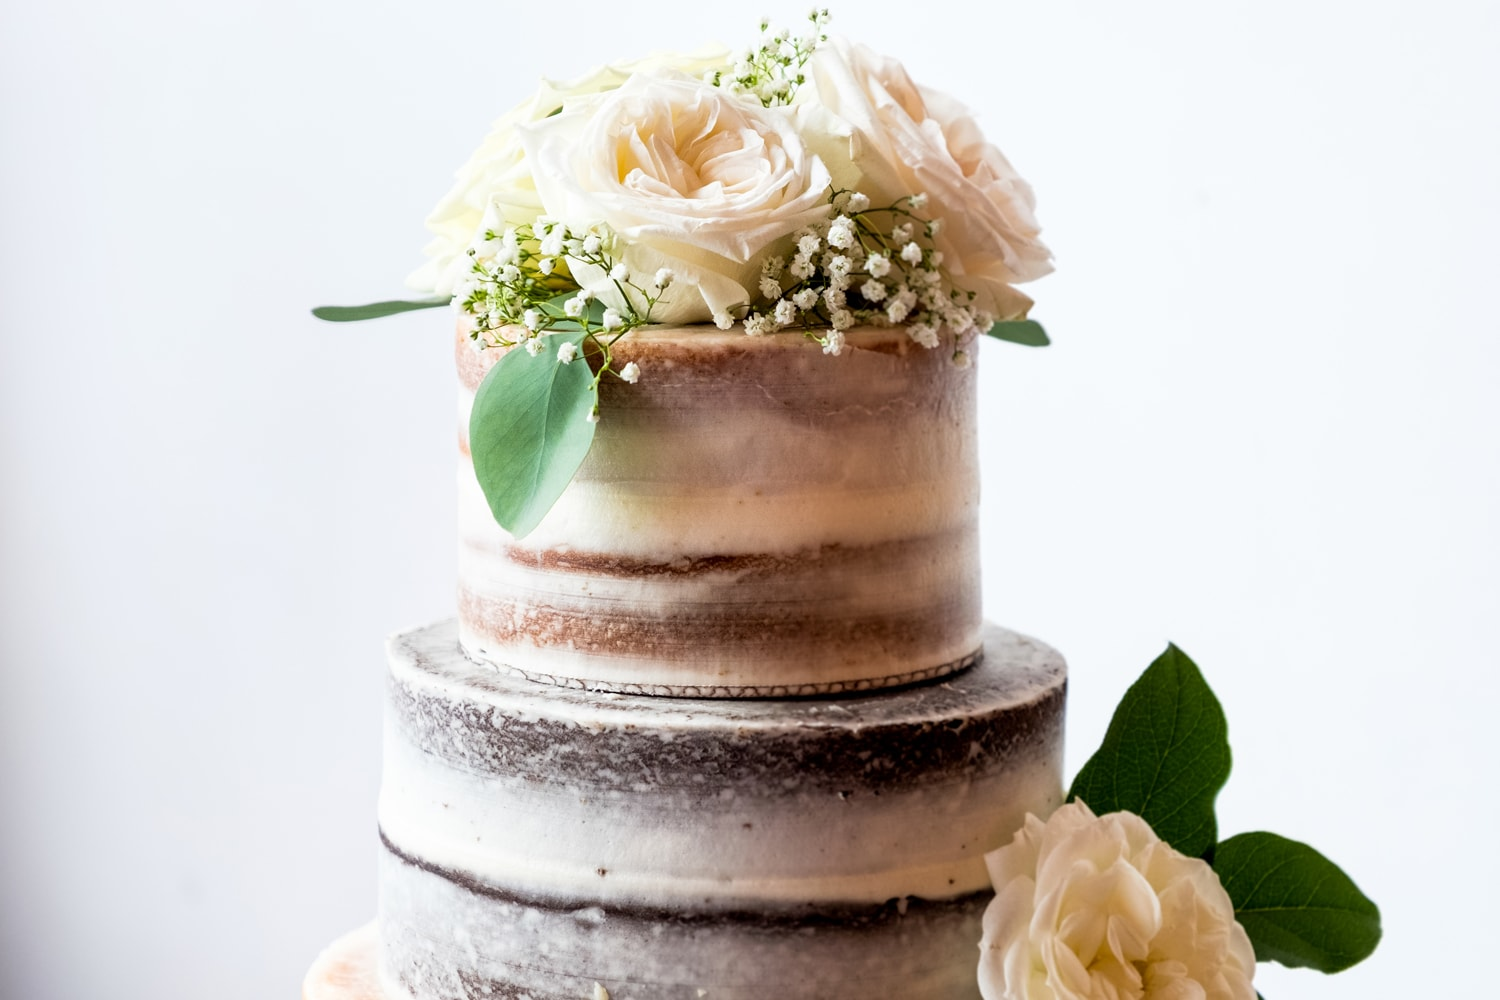 Stacie's Cake naked wedding cake at John Moore and Isabel Orozco Moore wedding at IAO Gallery in Oklahoma City // Photo by Leia Smethurst Photography